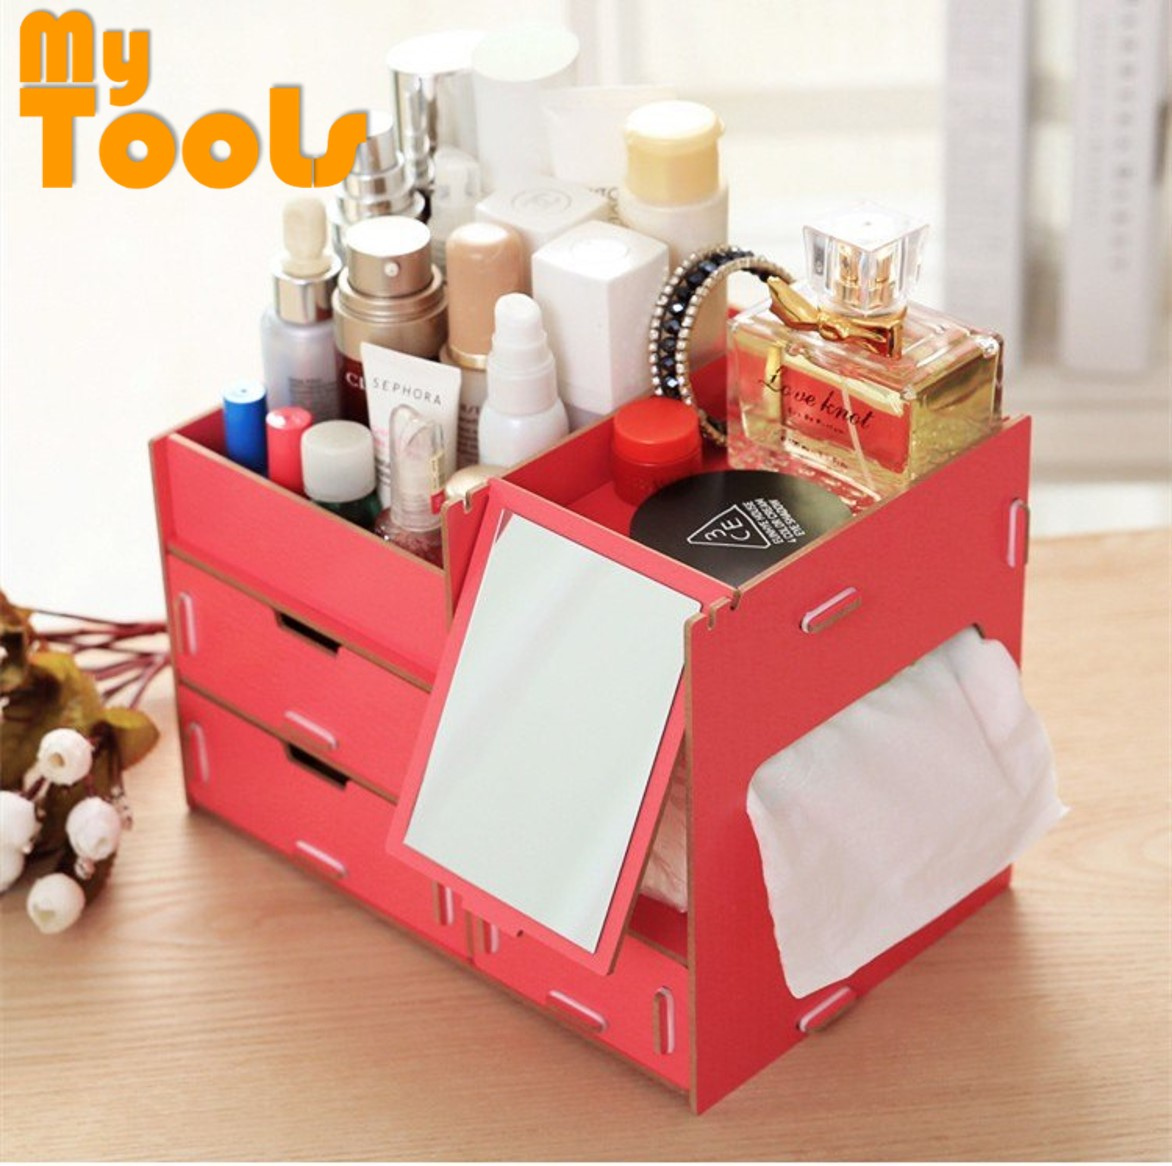 Mytools DIY Wooden Cosmetic Make Up Table Organizer With Mirror and Drawers